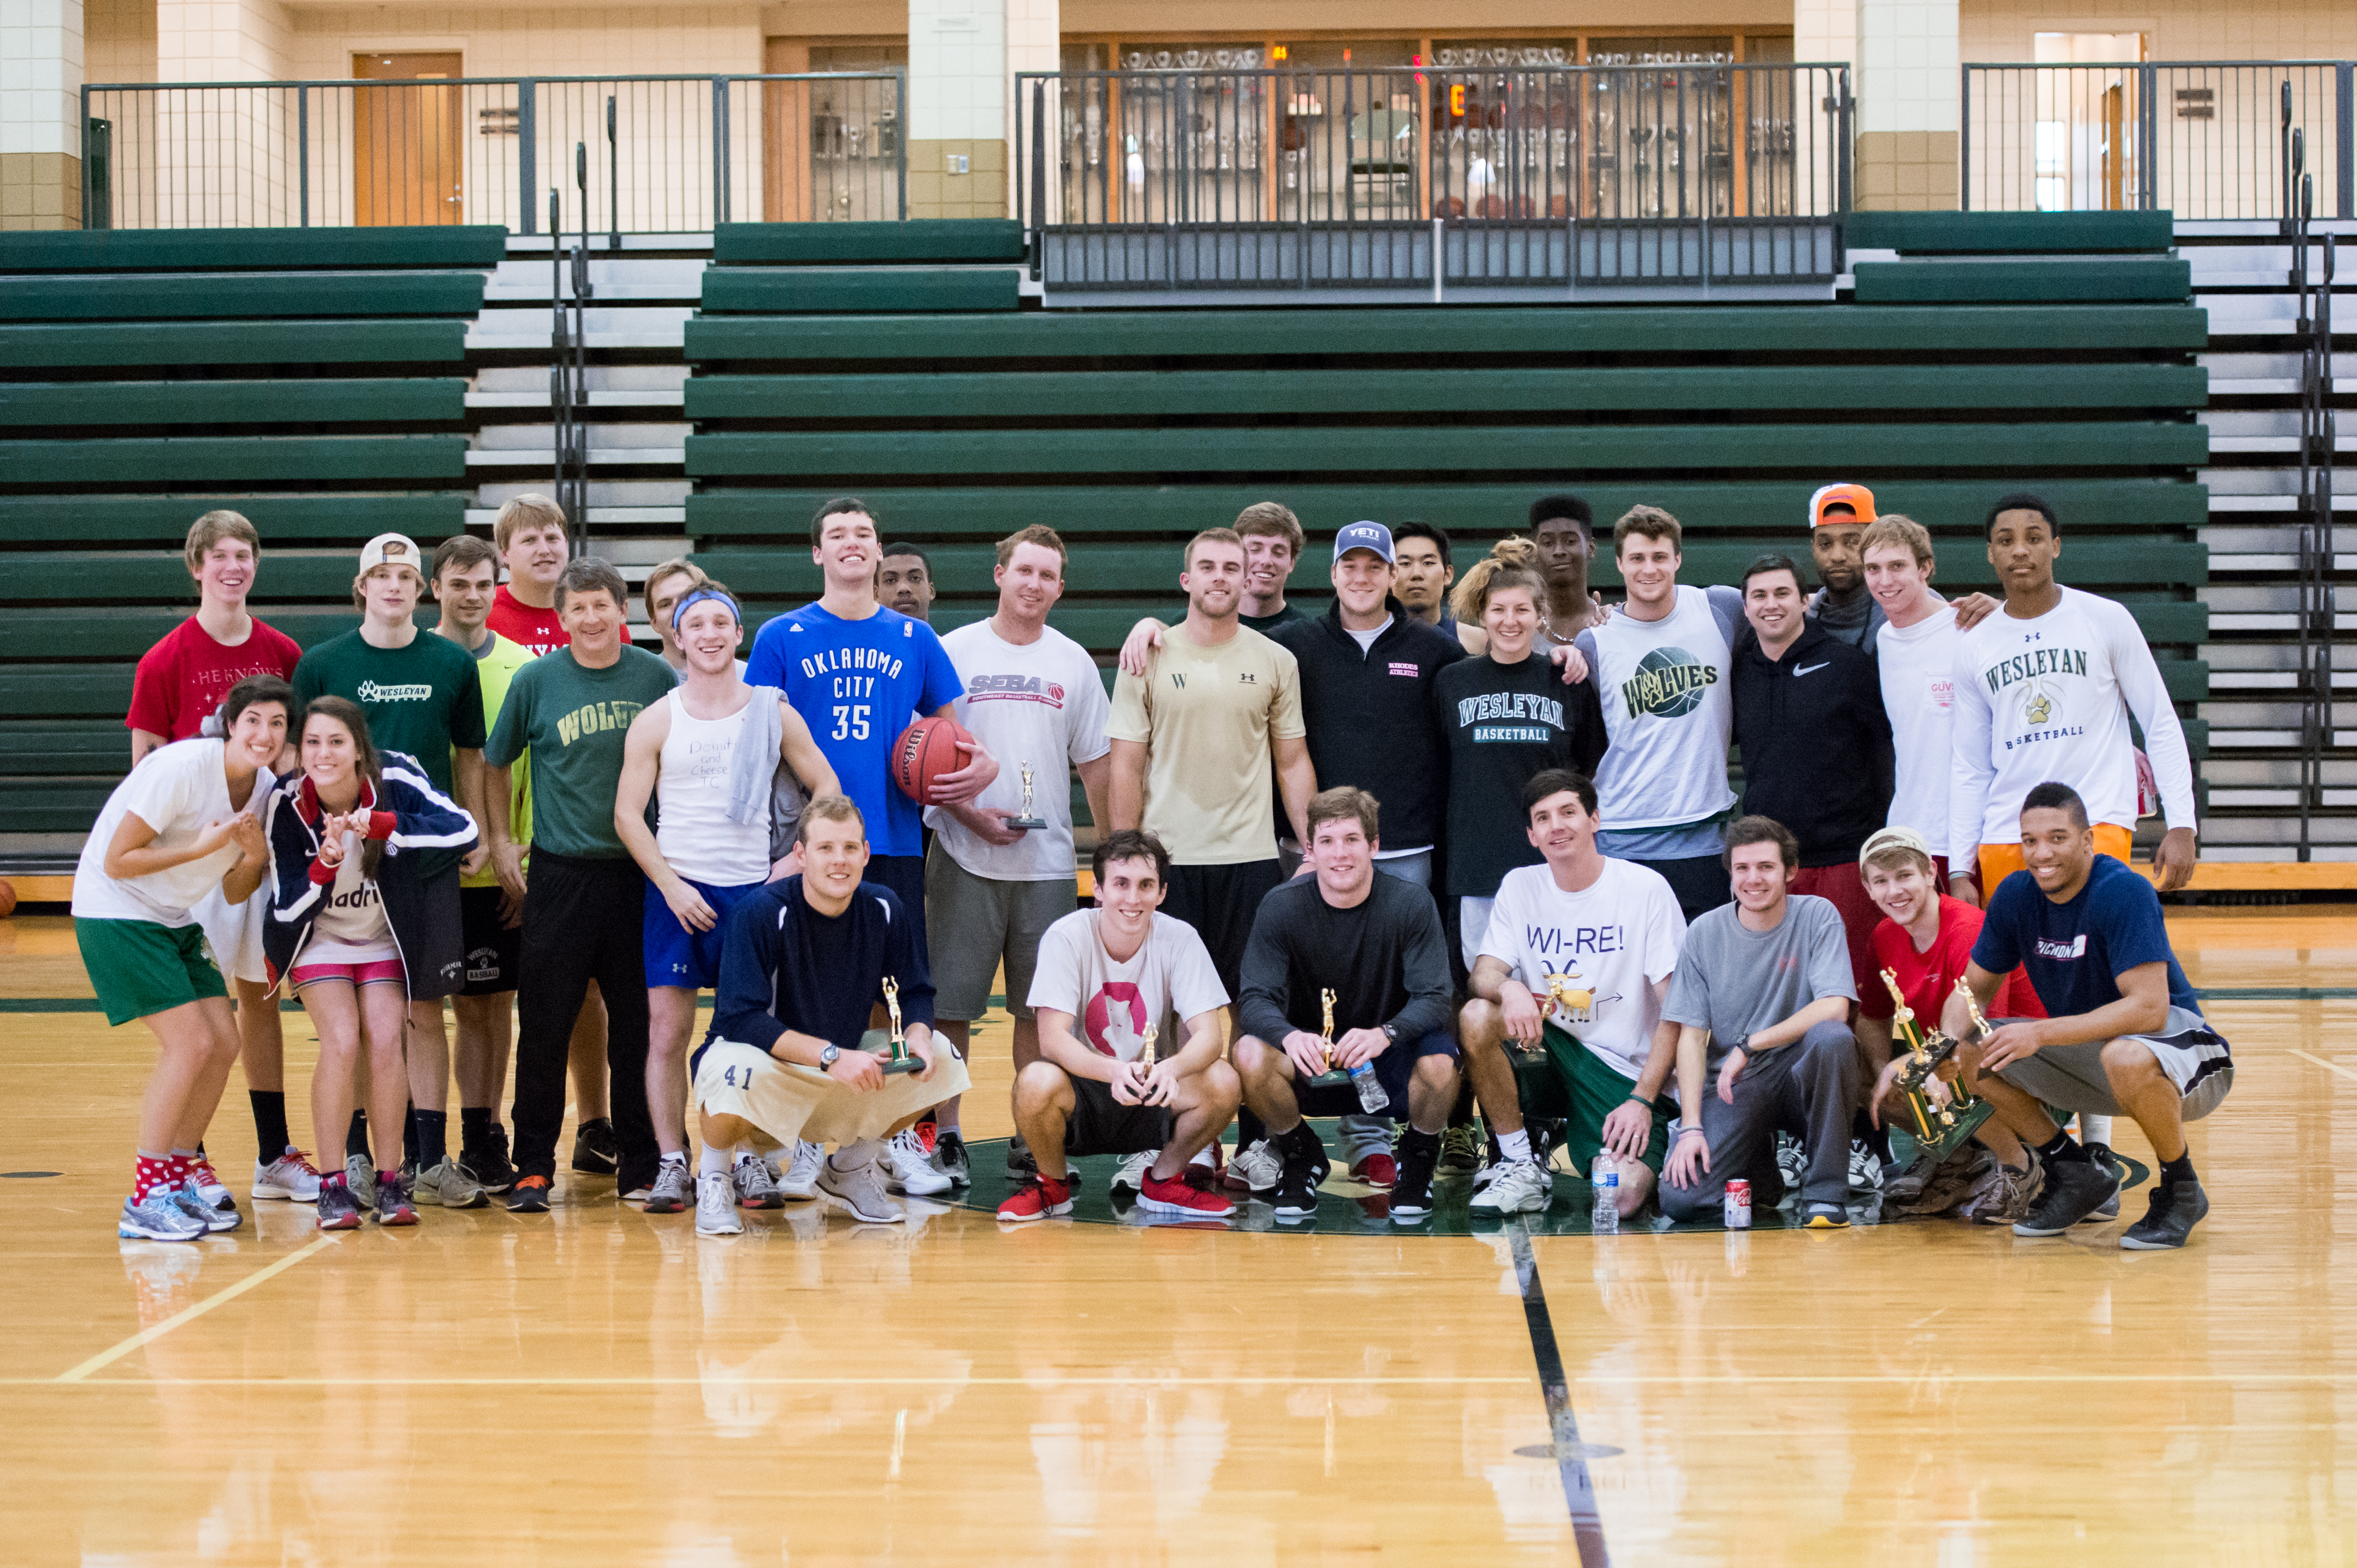 http://galleries.brianography.com/Wesleyan/Events/201314-Alumni-3-on-3-Basketbal